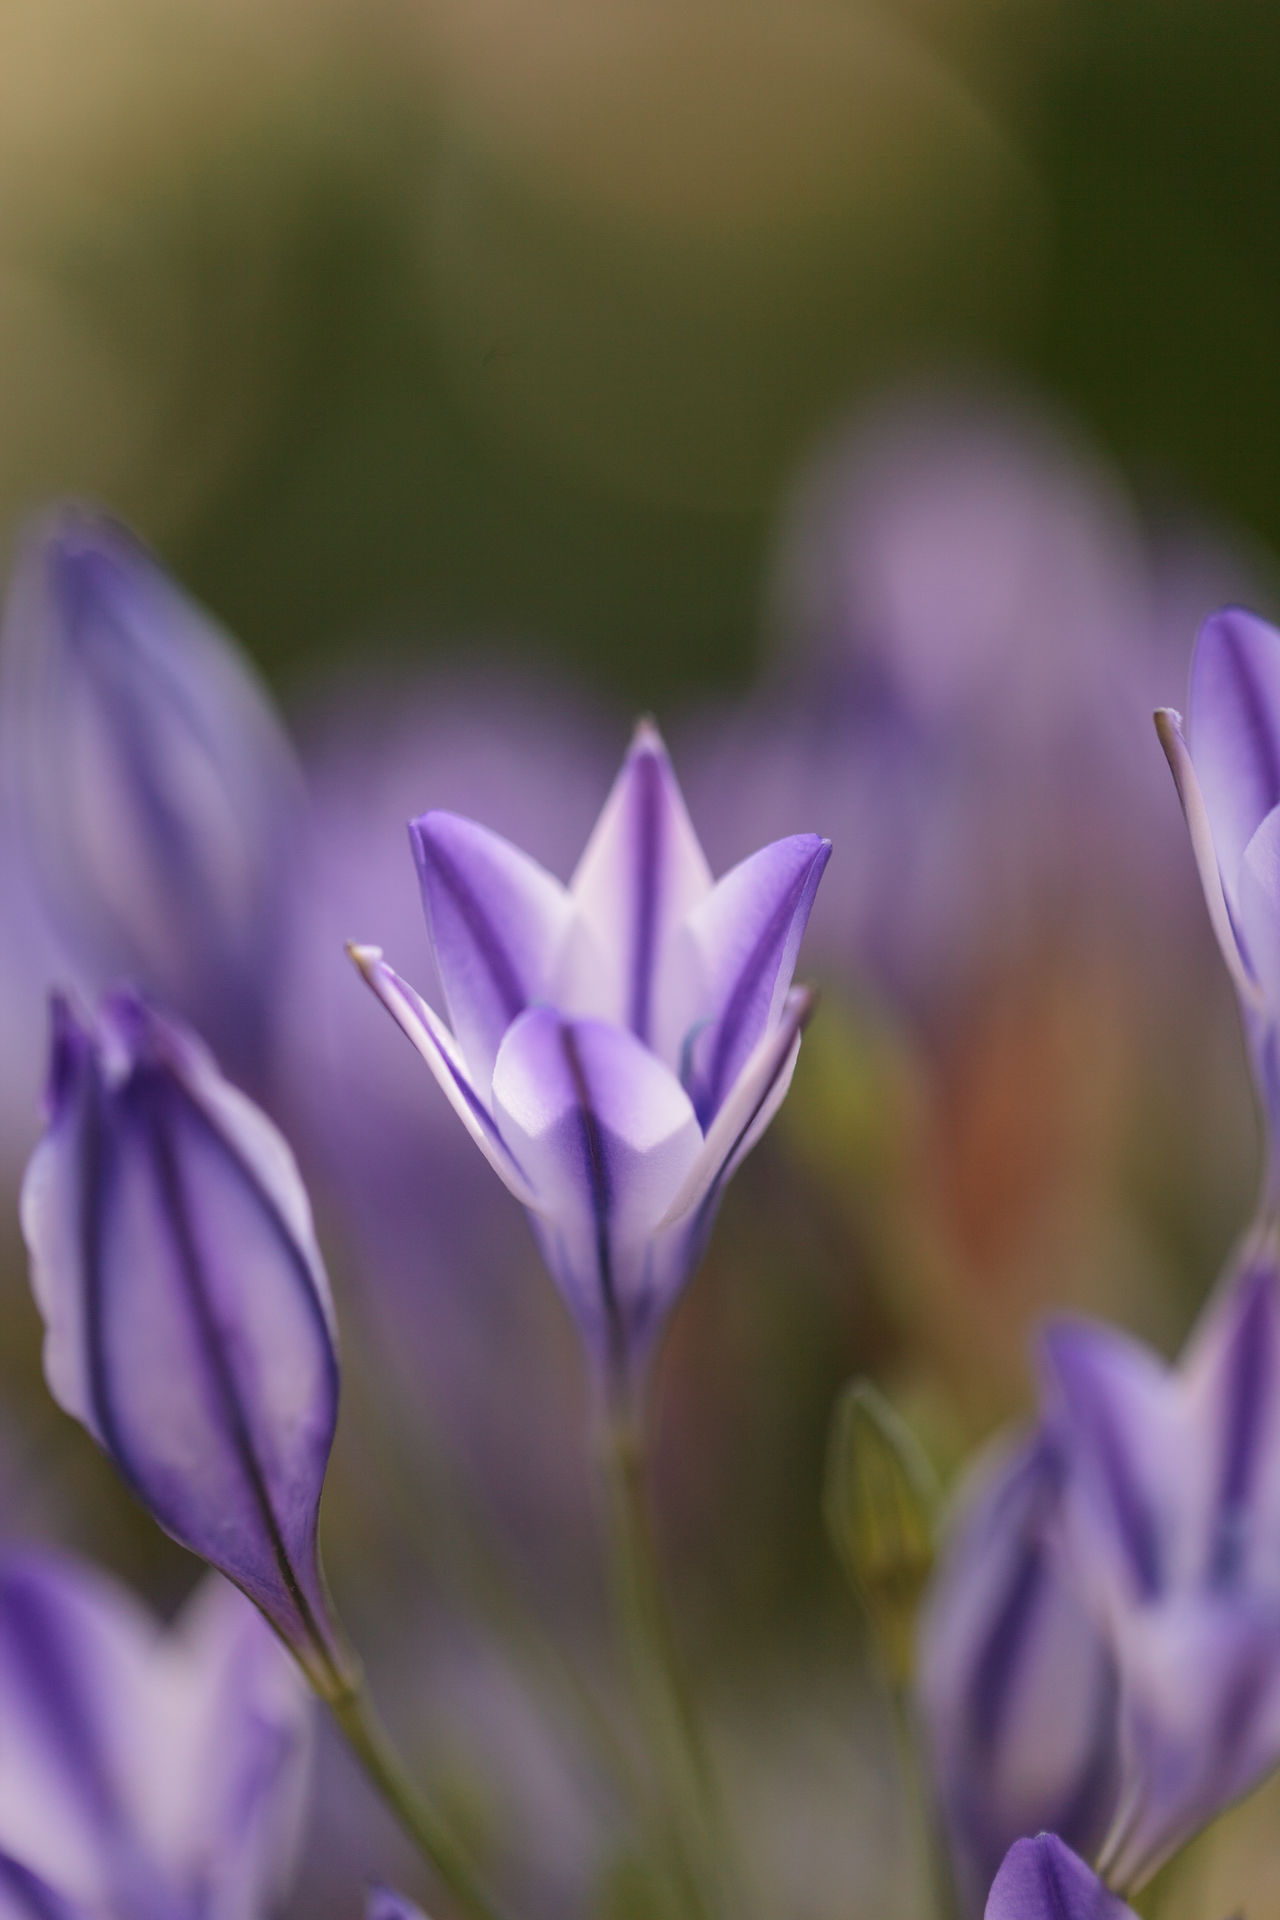 Purple blue Agapanthus flowers bloom on a background of green in a botanical garden in spring. Agapanthus Agapanthus Africanus Beauty In Nature Close-up Crocus Day Flower Flower Head Fragility Freshness Growth Nature No People Outdoors Petal Plant Purple Purple Flower